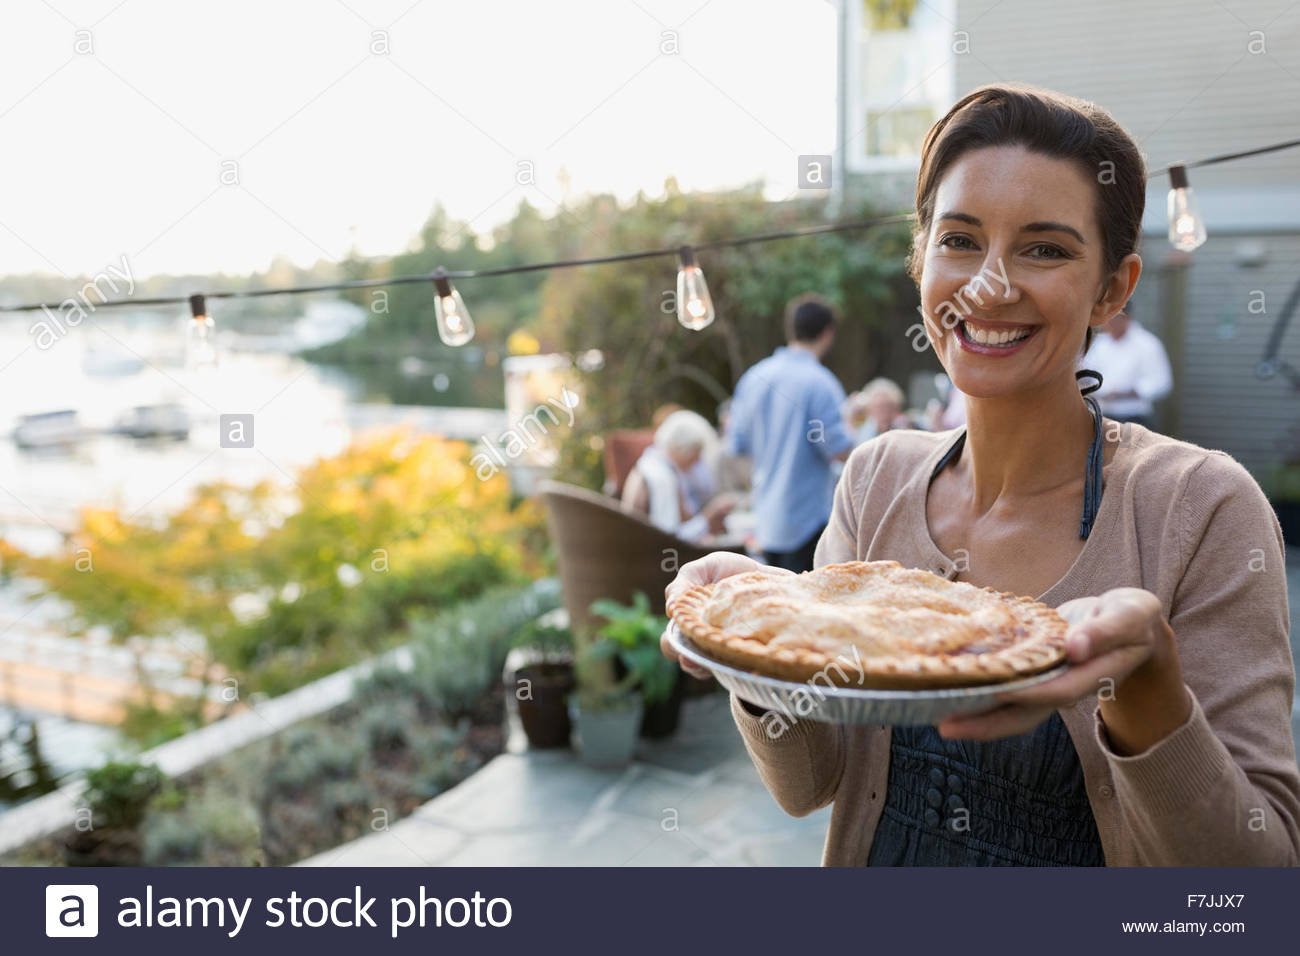 Portrait smiling woman serving homemade pie lakeside patio - Stock Image